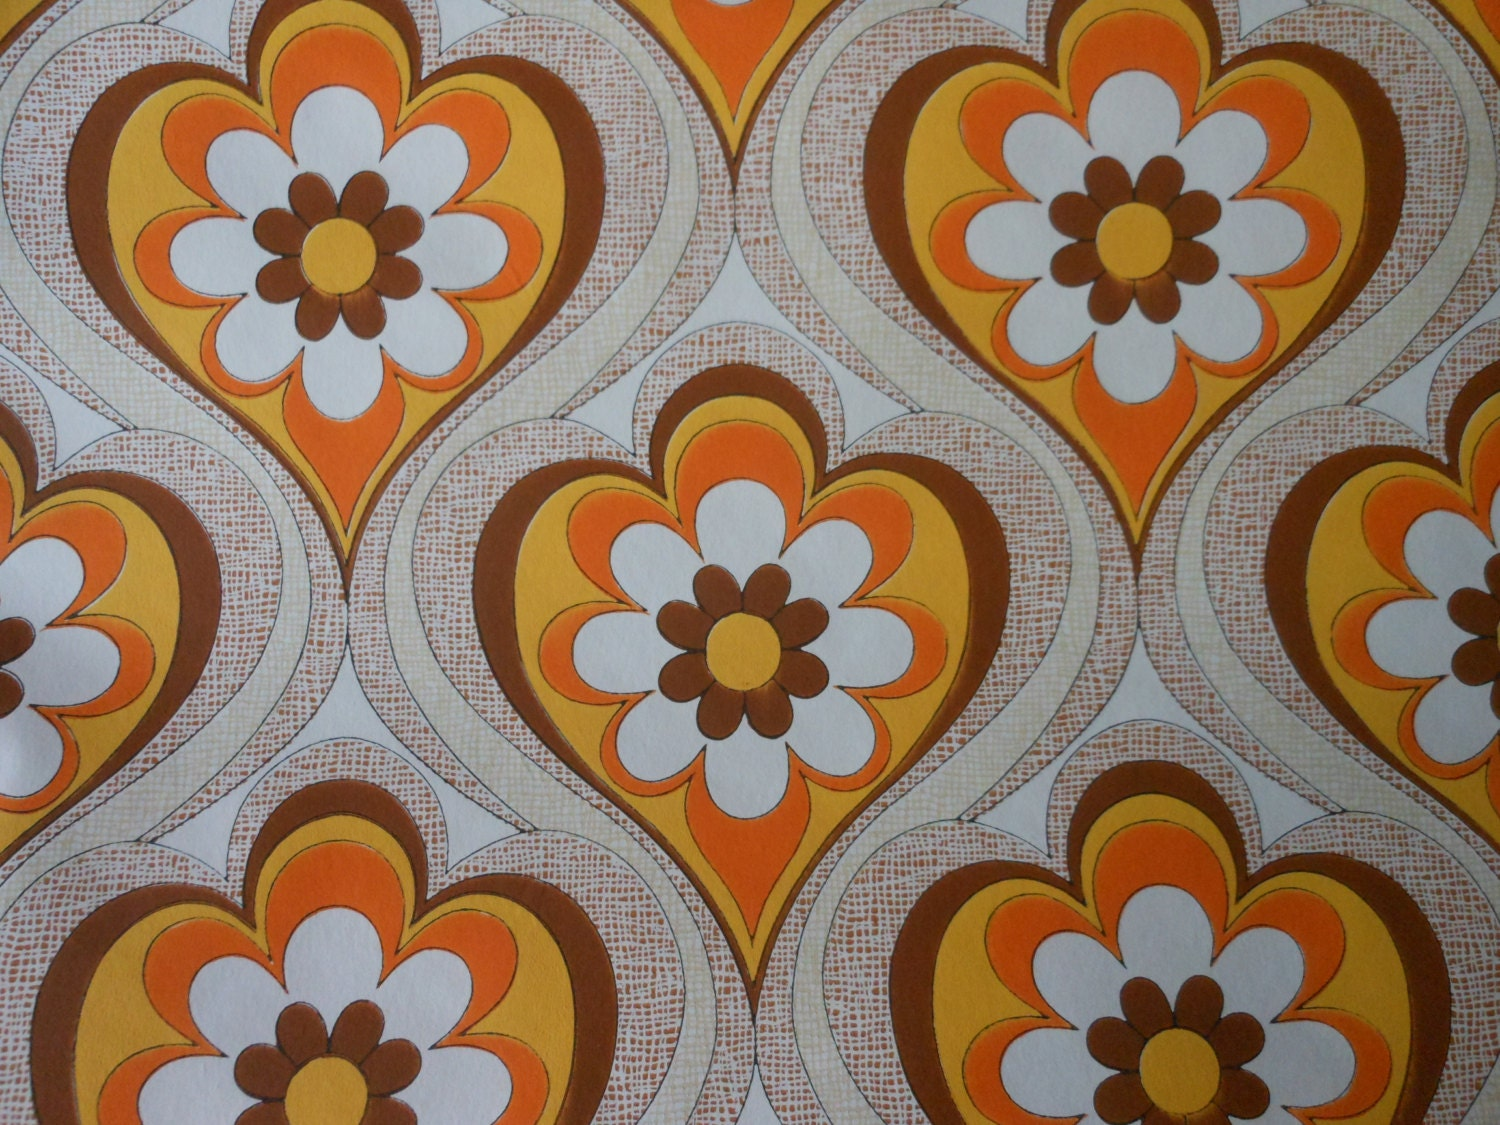 1970s vintage wallpaper retro - photo #15